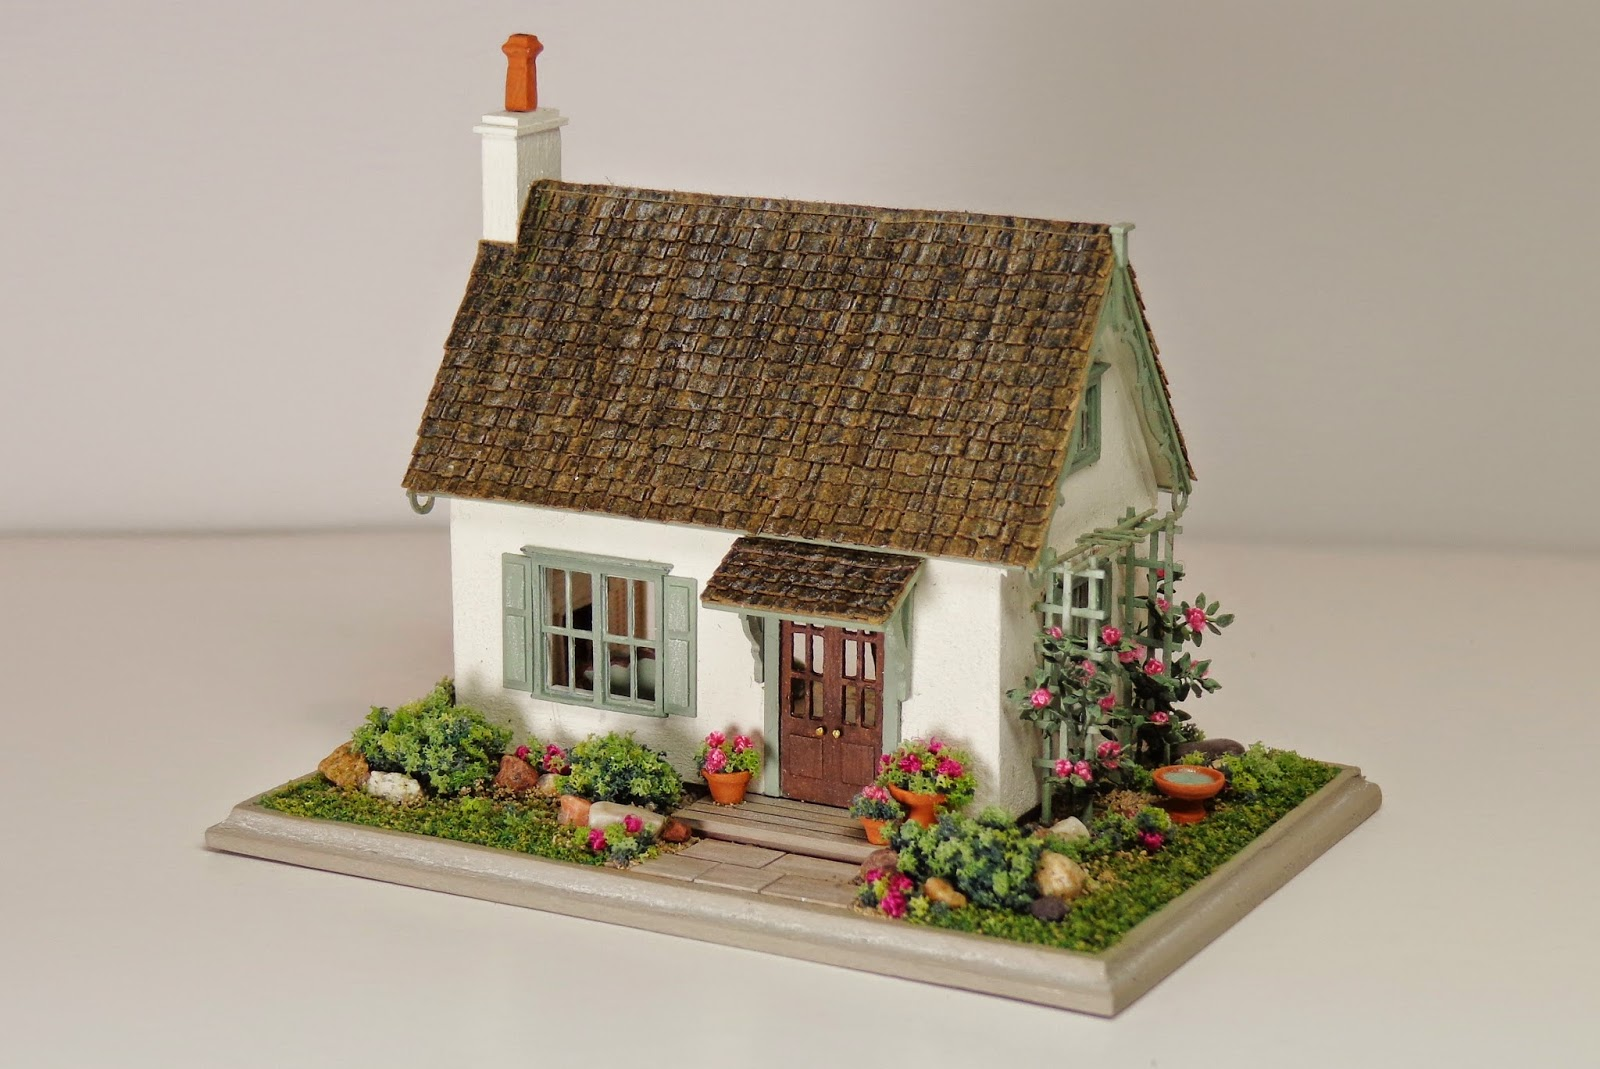 and the kiwi cottage it houses that miniature her bobbye built for month imagination who gorrell cottages granddaughters says miniaturist everyone she lilliput sees two a of loves